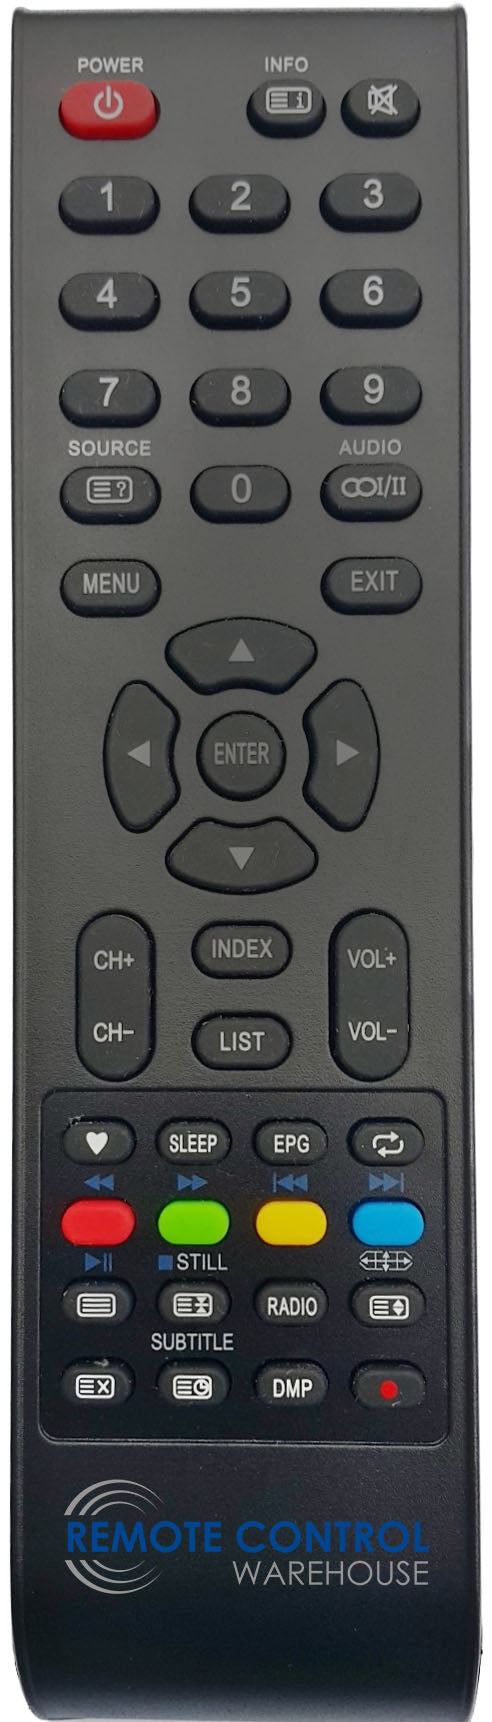 KOGAN ORIGINAL REMOTE CONTROL - KALED55XXXTA LED TV